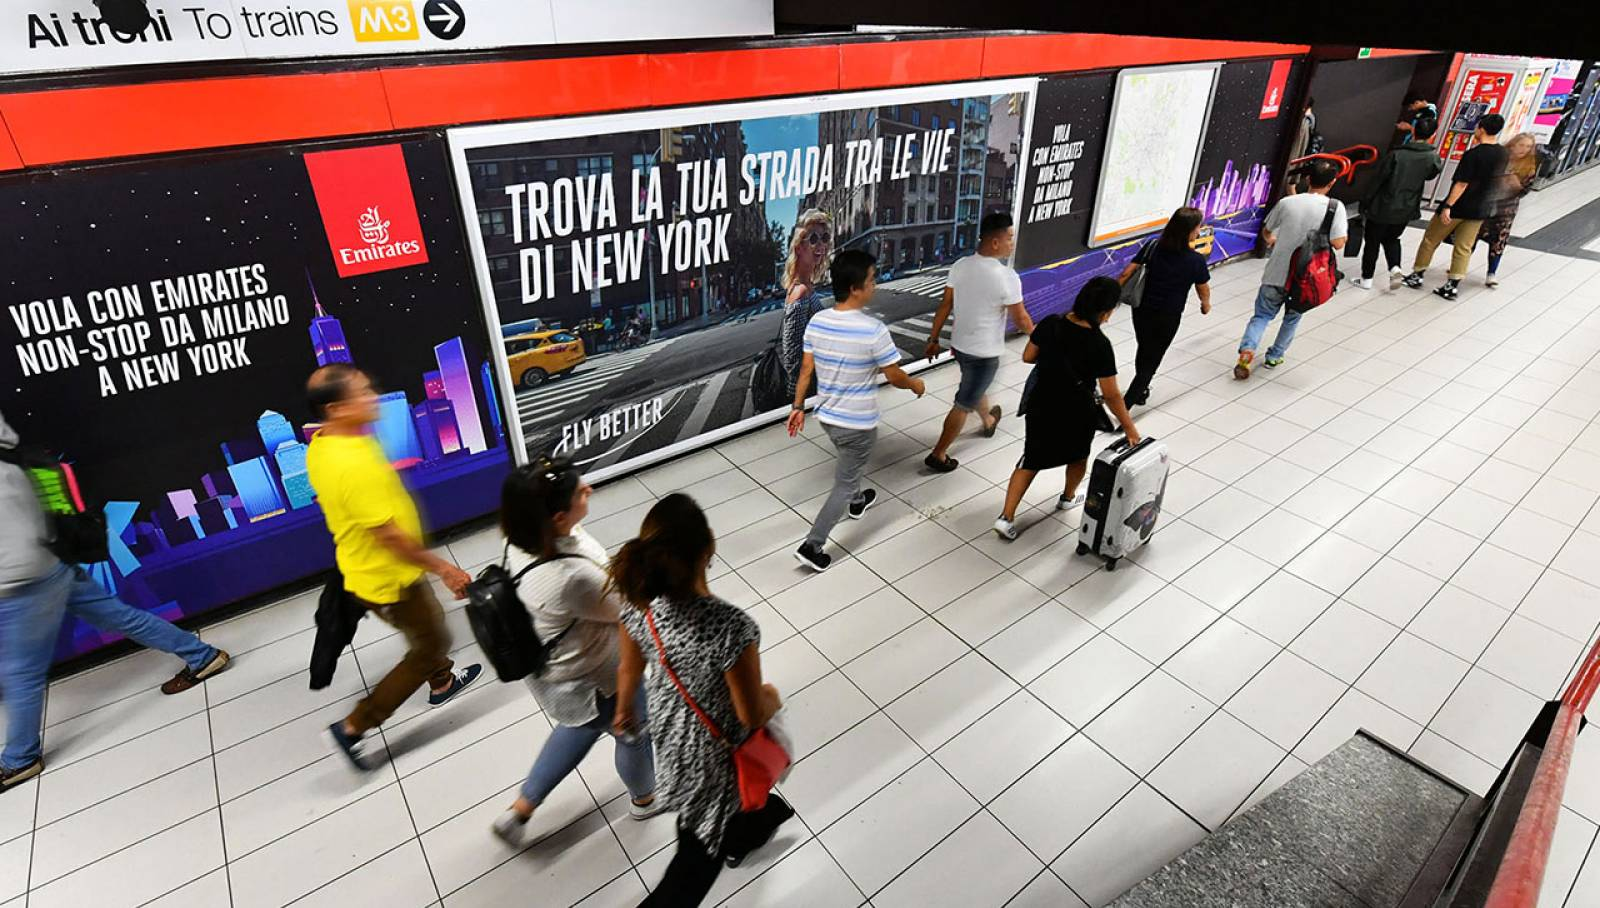 OOH advertising IGPDecaux Station Domination in Milan for Emirates